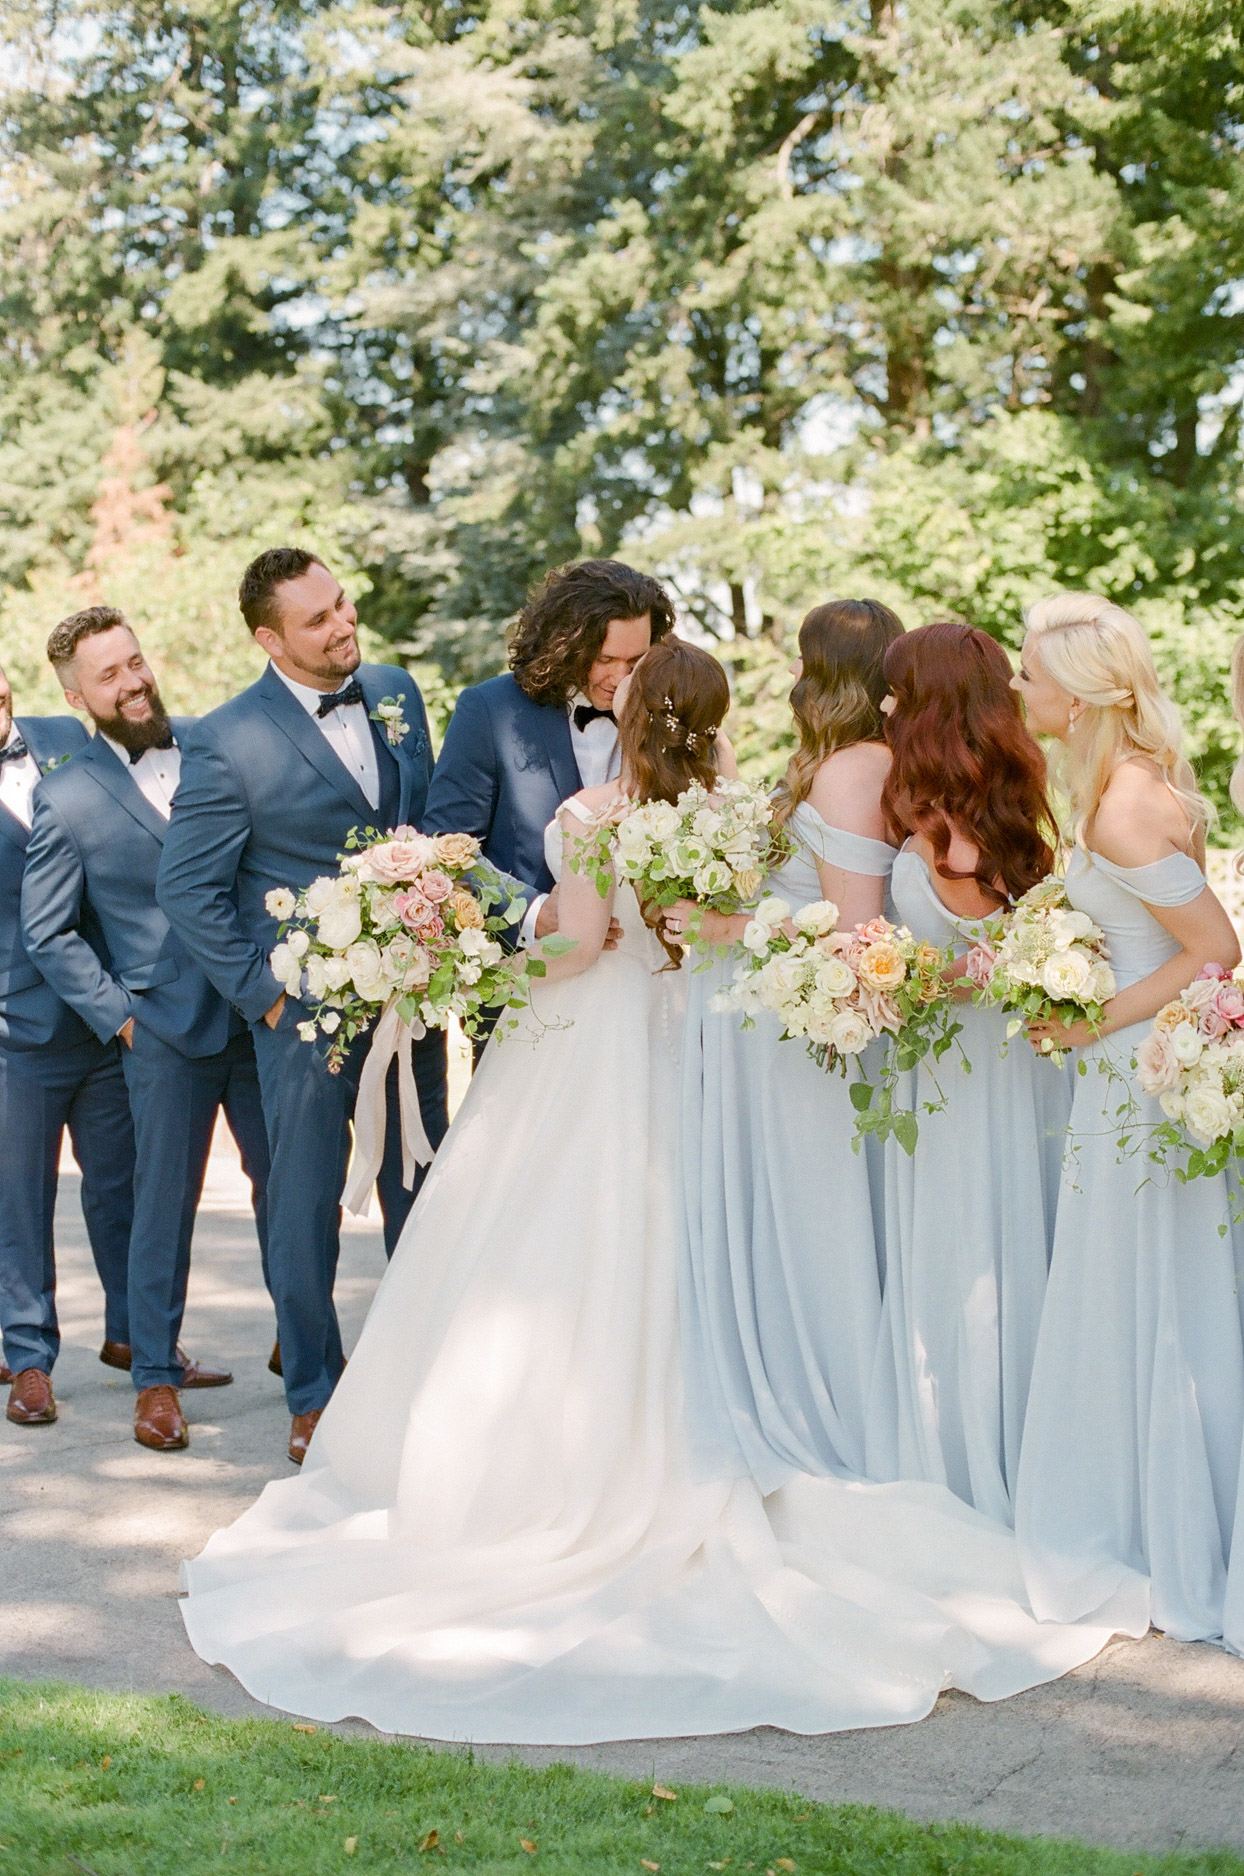 bride and groom share a kiss surrounded by wedding party